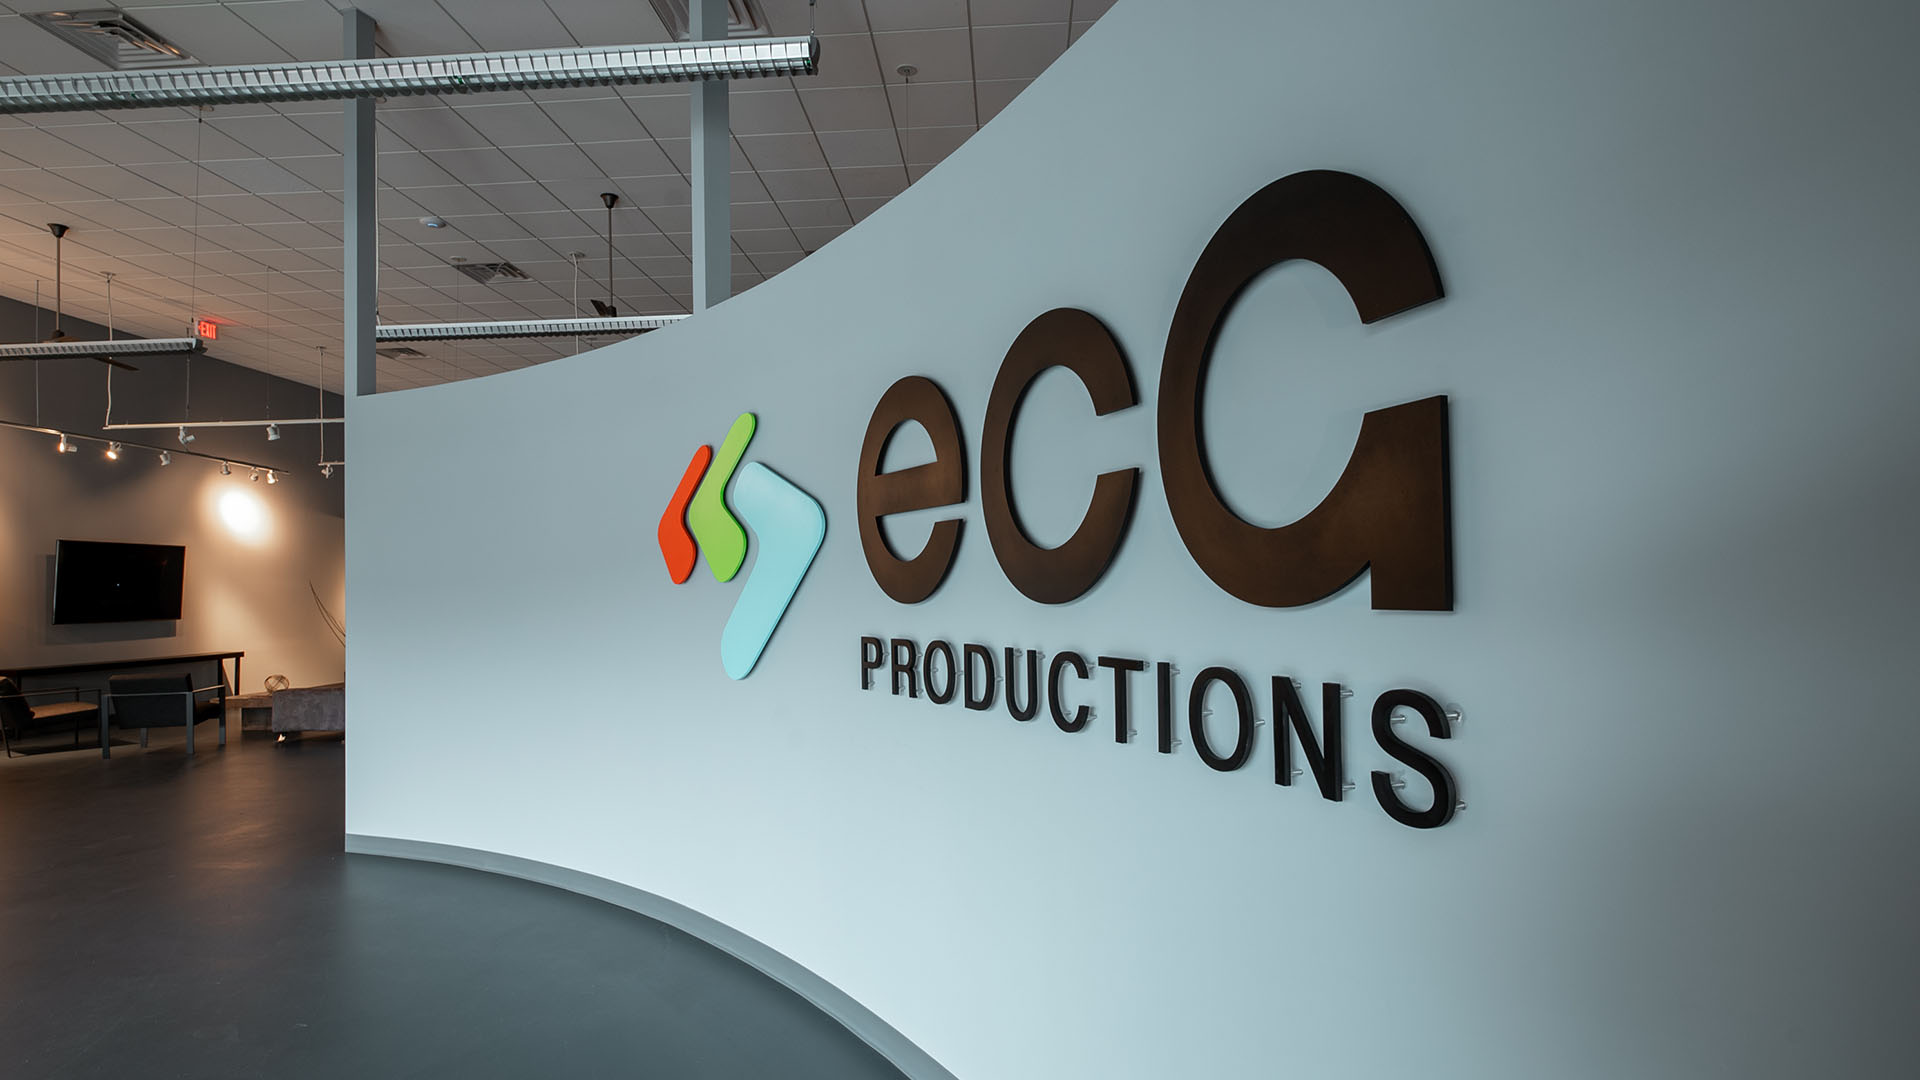 ECG Productions logo at the lobby entrance